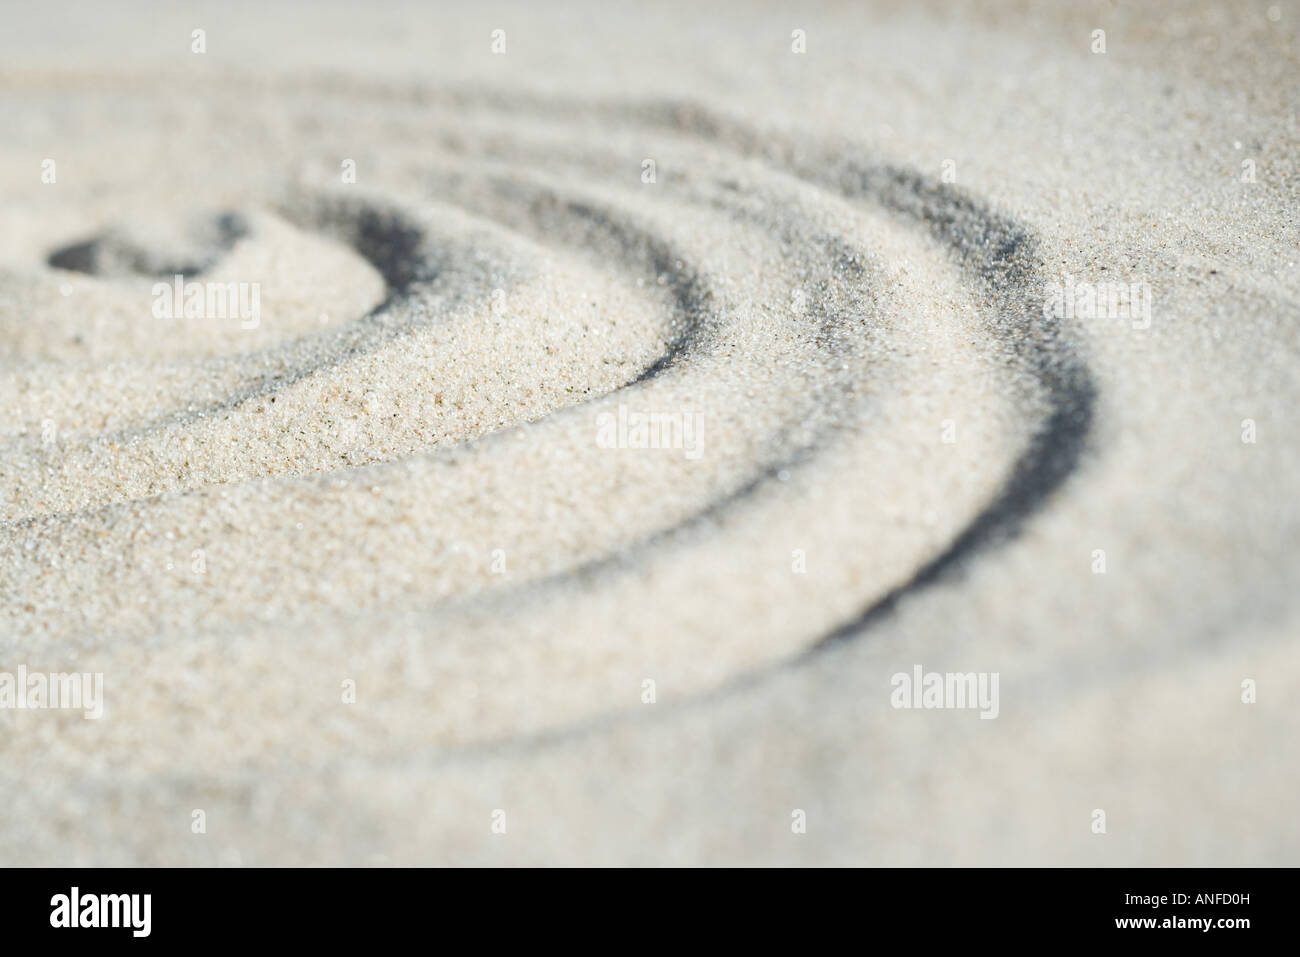 Spiral shape drawn in sand, close-up, surface level - Stock Image